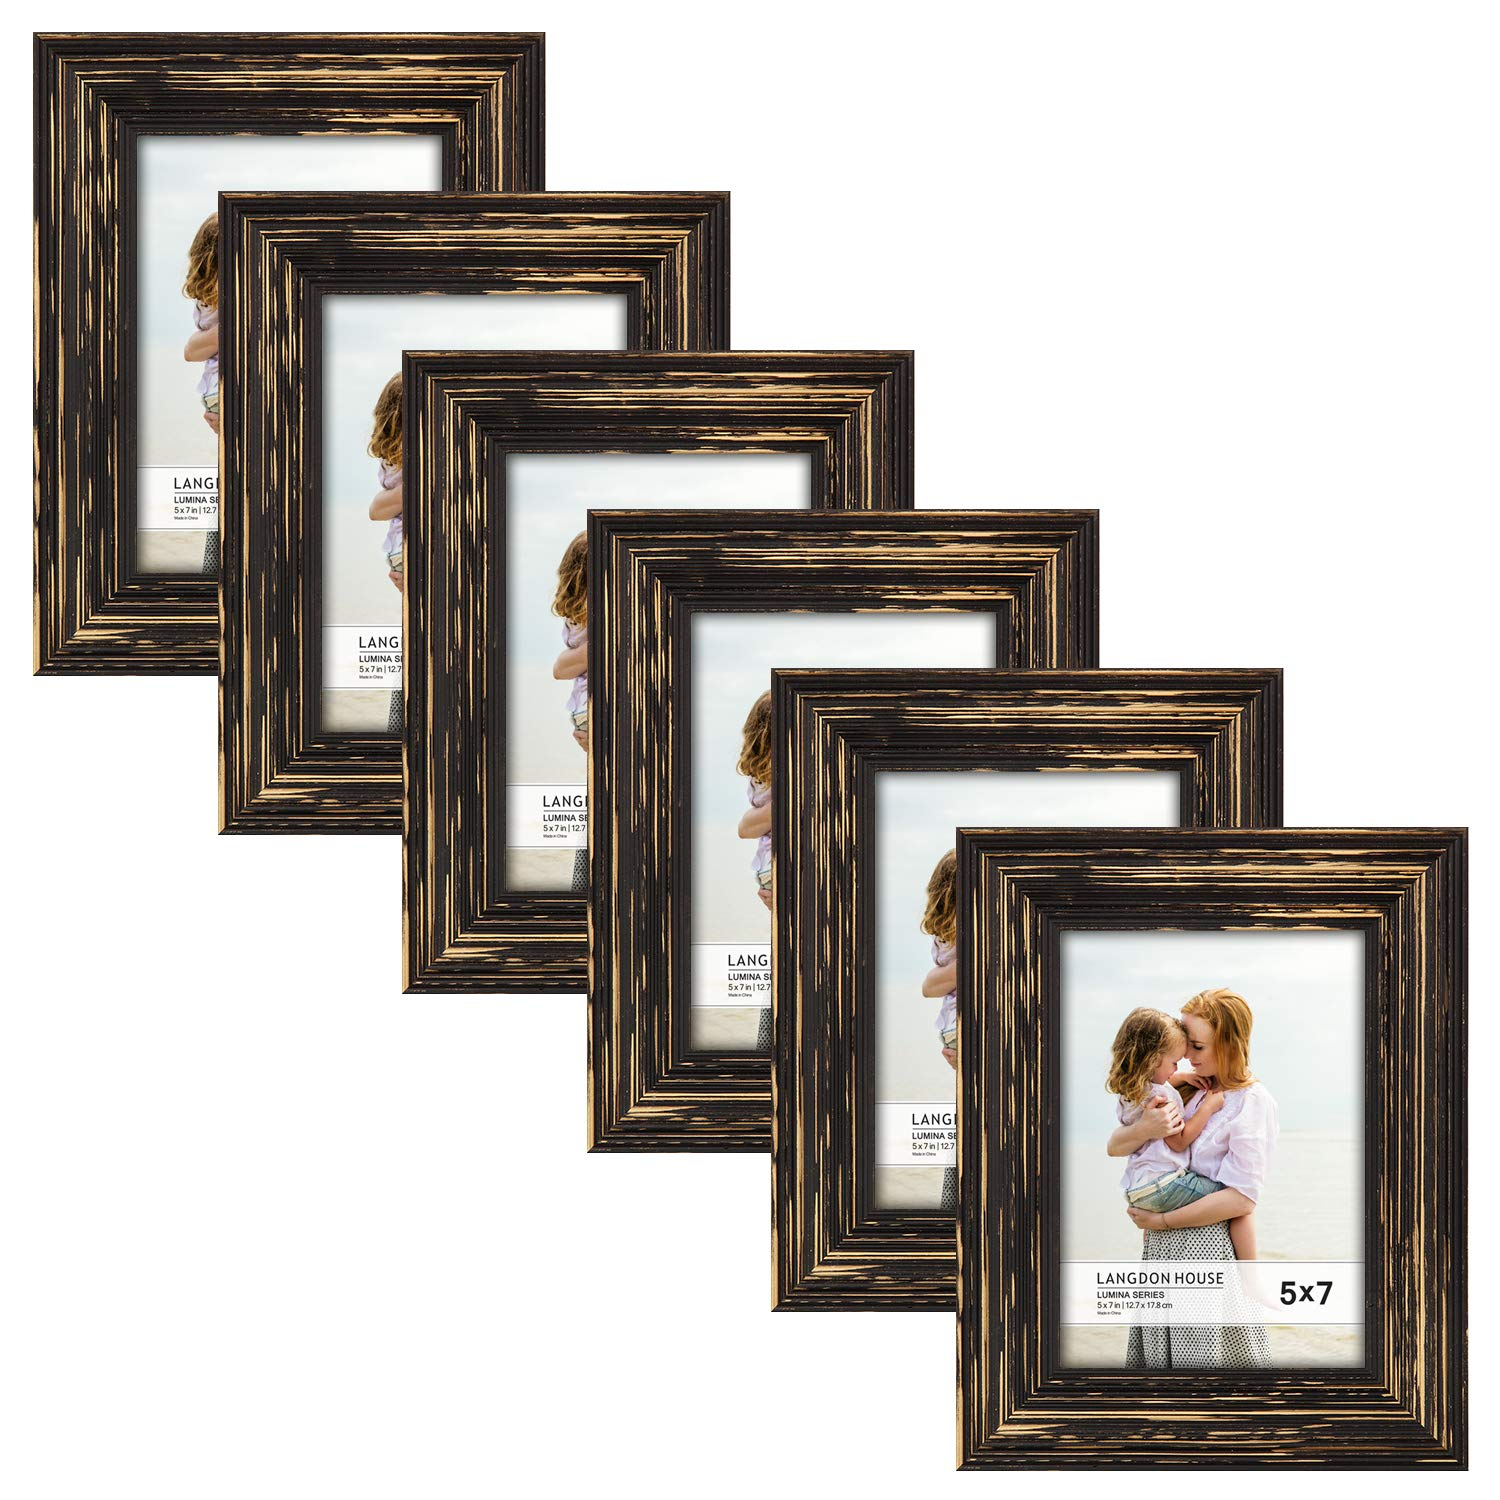 Langdon House 5x7 Real Wood Picture Frames (6 Pack, Barnwood Brown - Gold Accents), Brown Wooden Photo Frame 5 x 7, Wall Mount or Table Top, Set Of 6 Lumina Collection by Langdon House